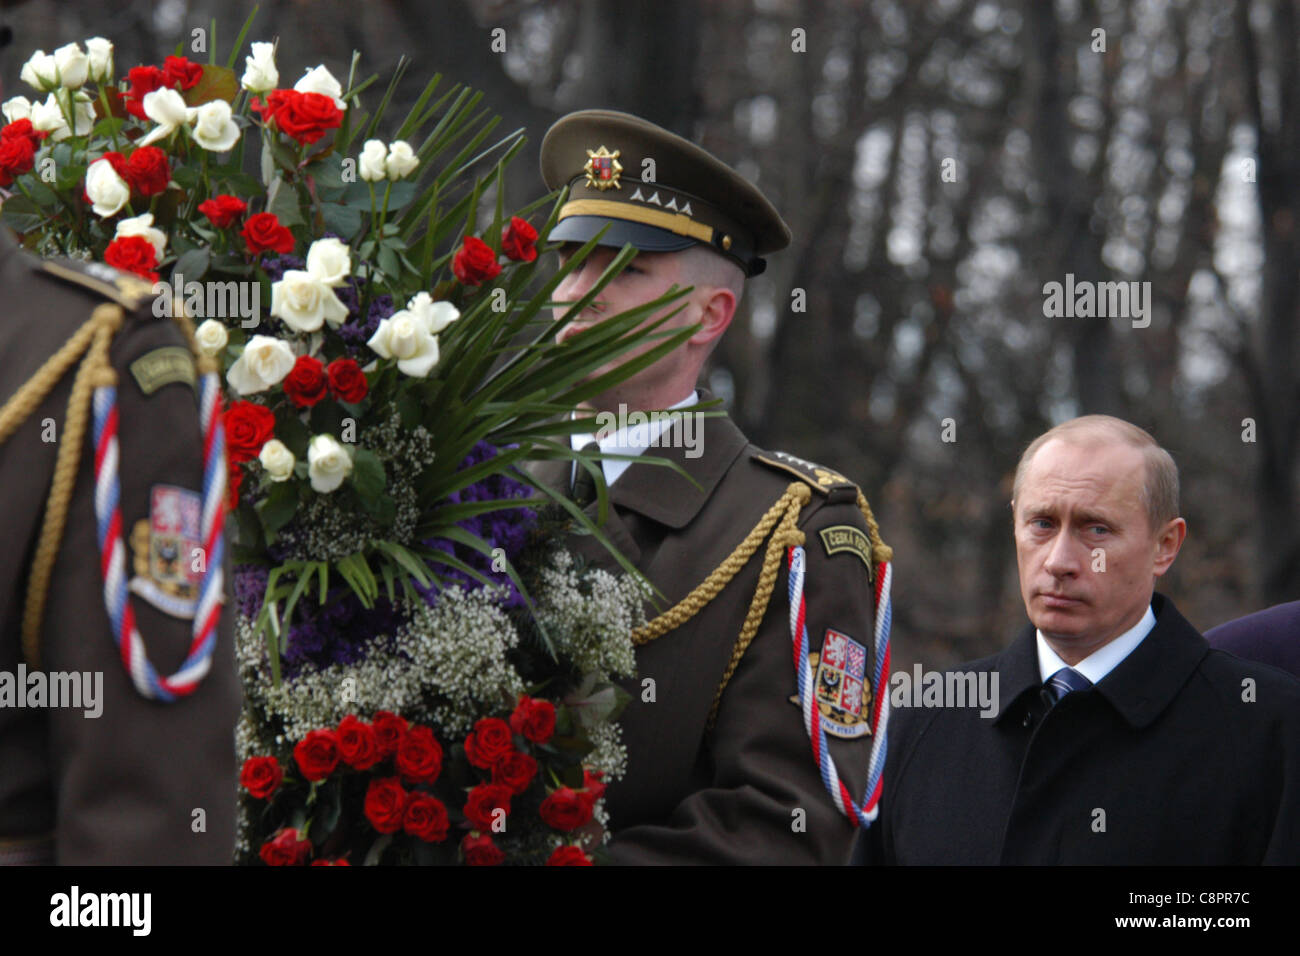 Russian president Vladimir Putin visits the Soviet War Memorial at Olsany cemetery in Prague, Czech Republic on - Stock Image